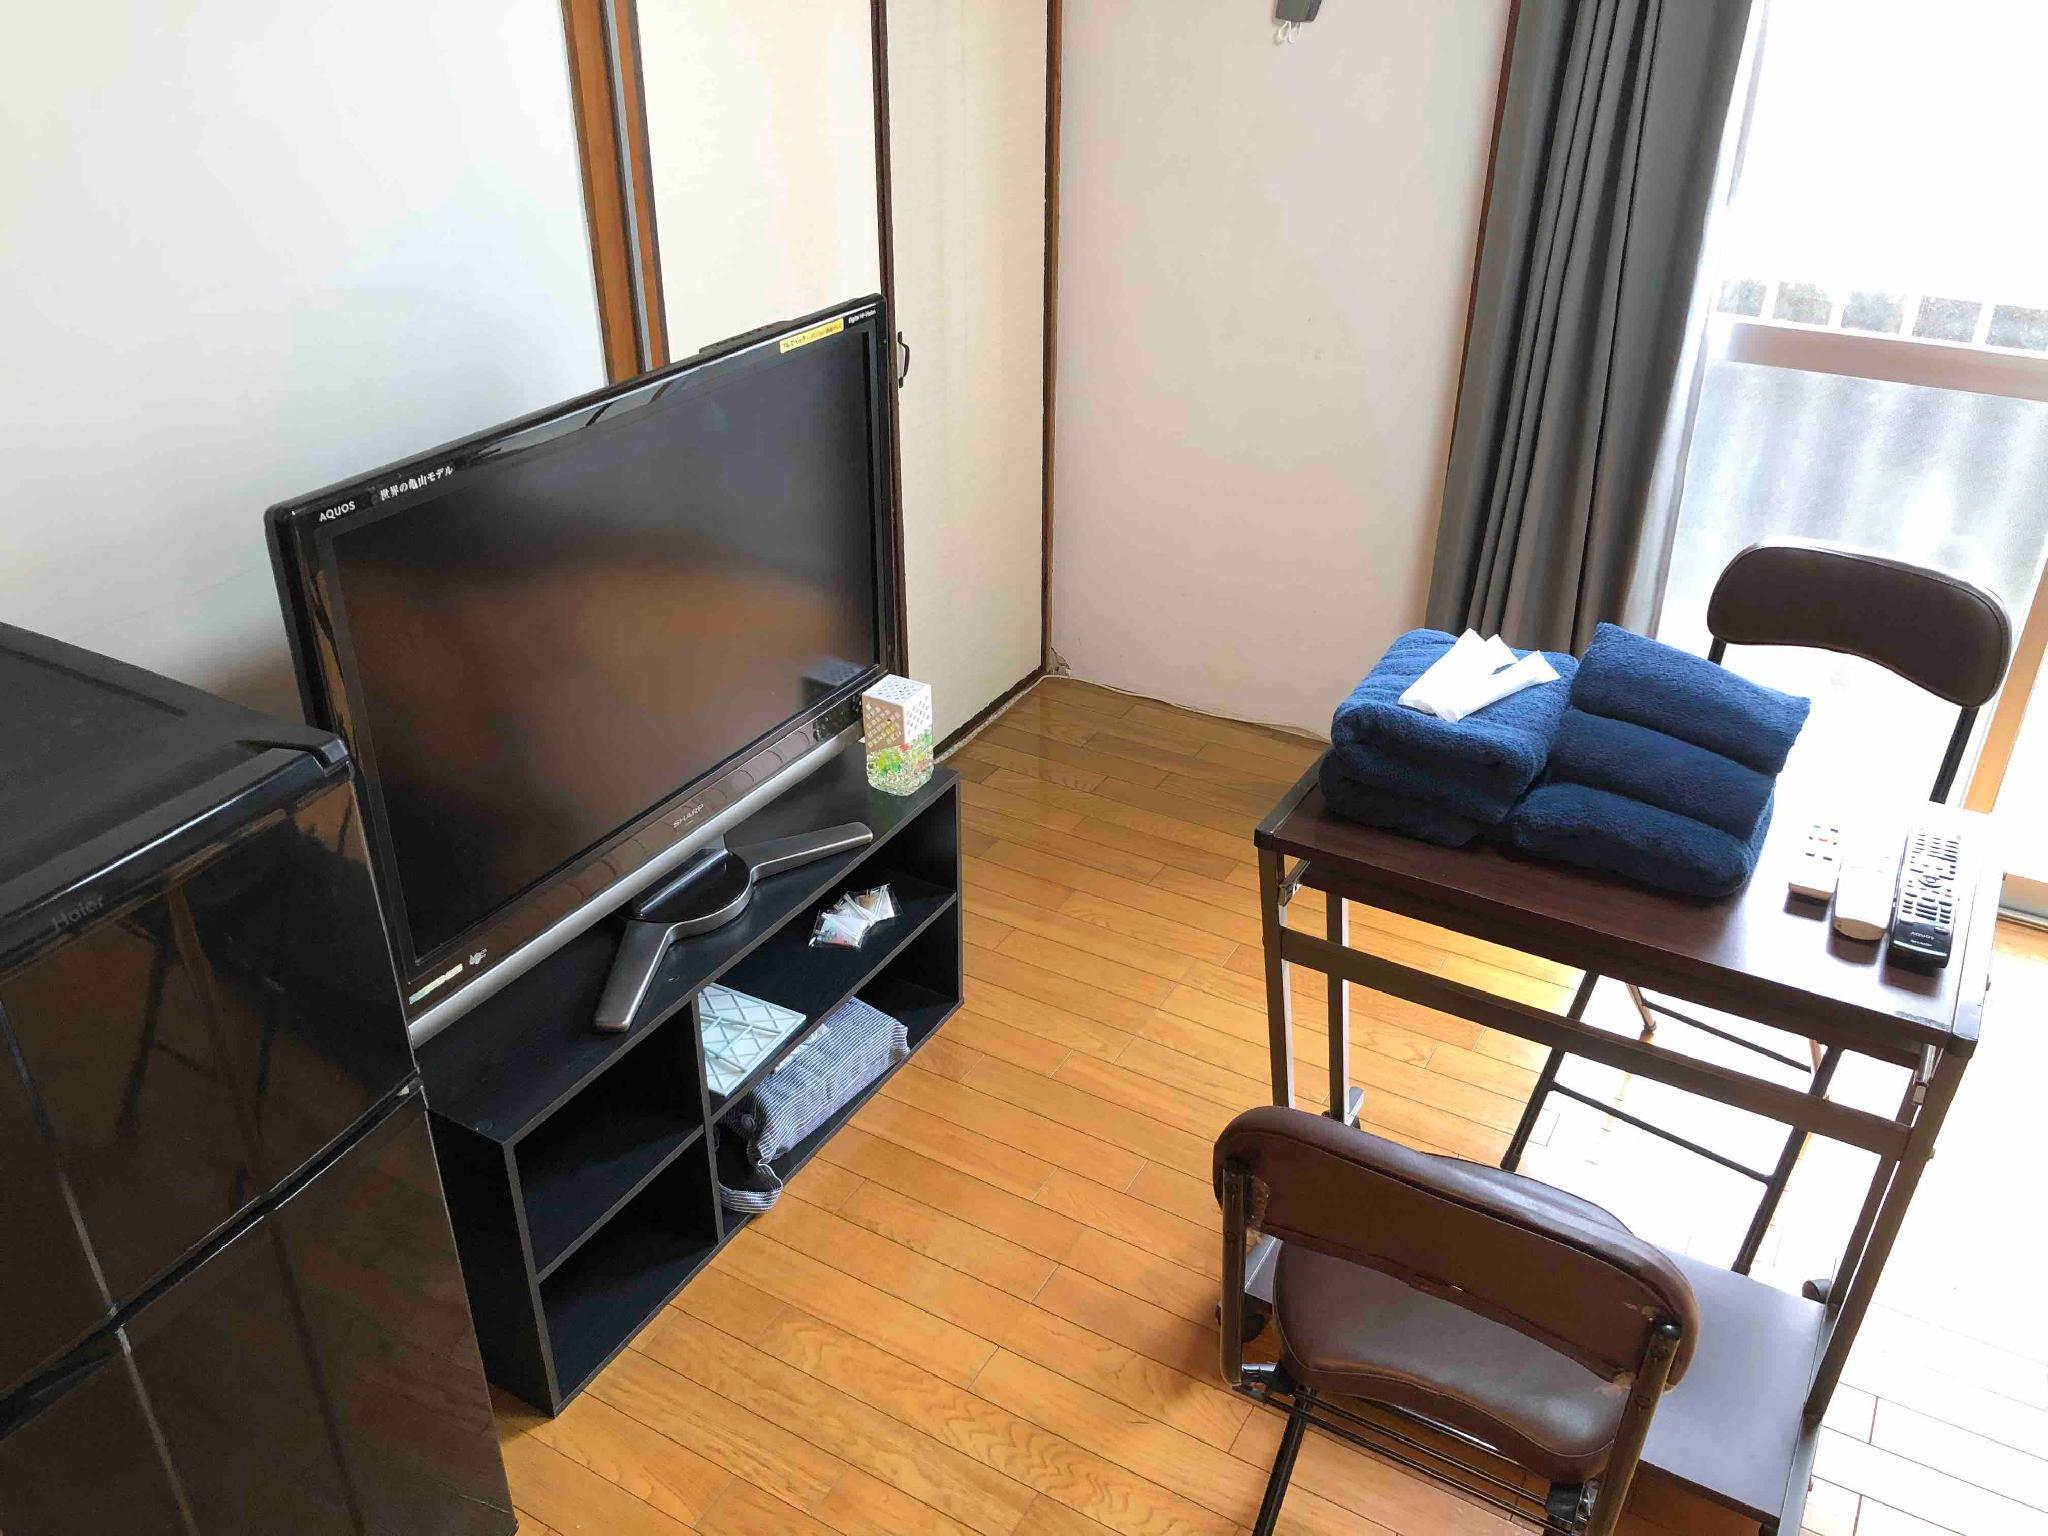 Japanese ModernRoom With Kitchen And Bathroom 2103